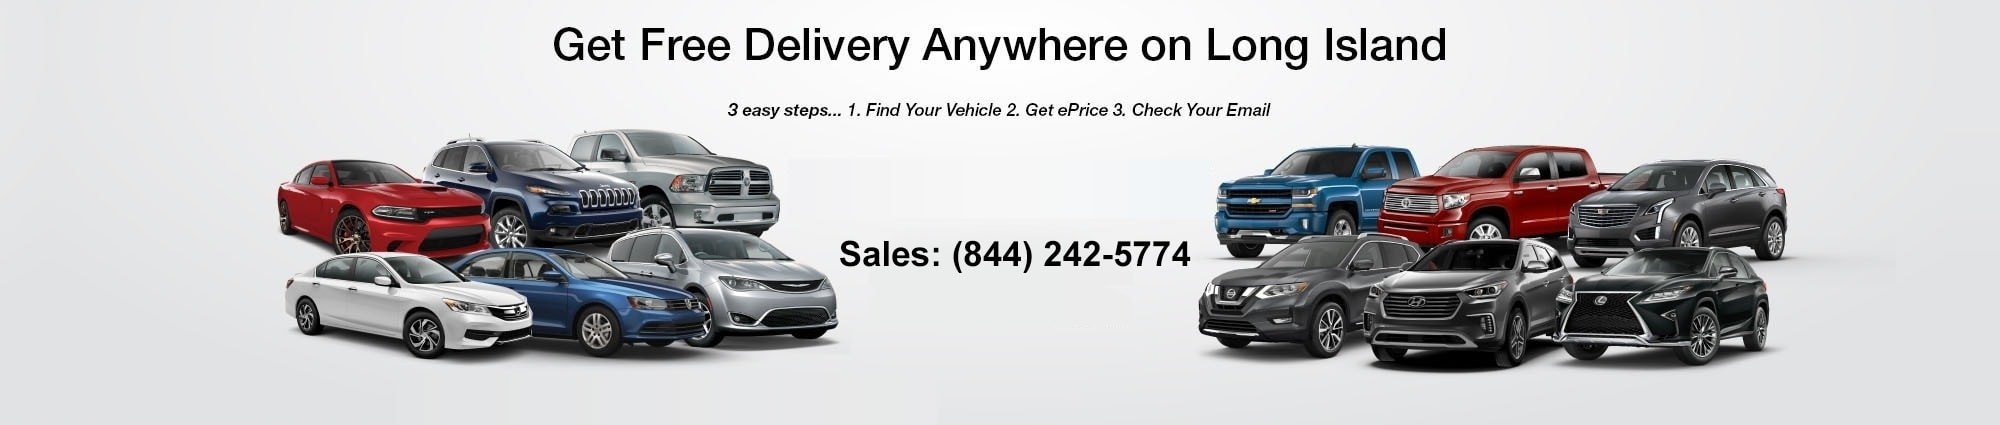 Get Free Delivery Anywhere On Long Island